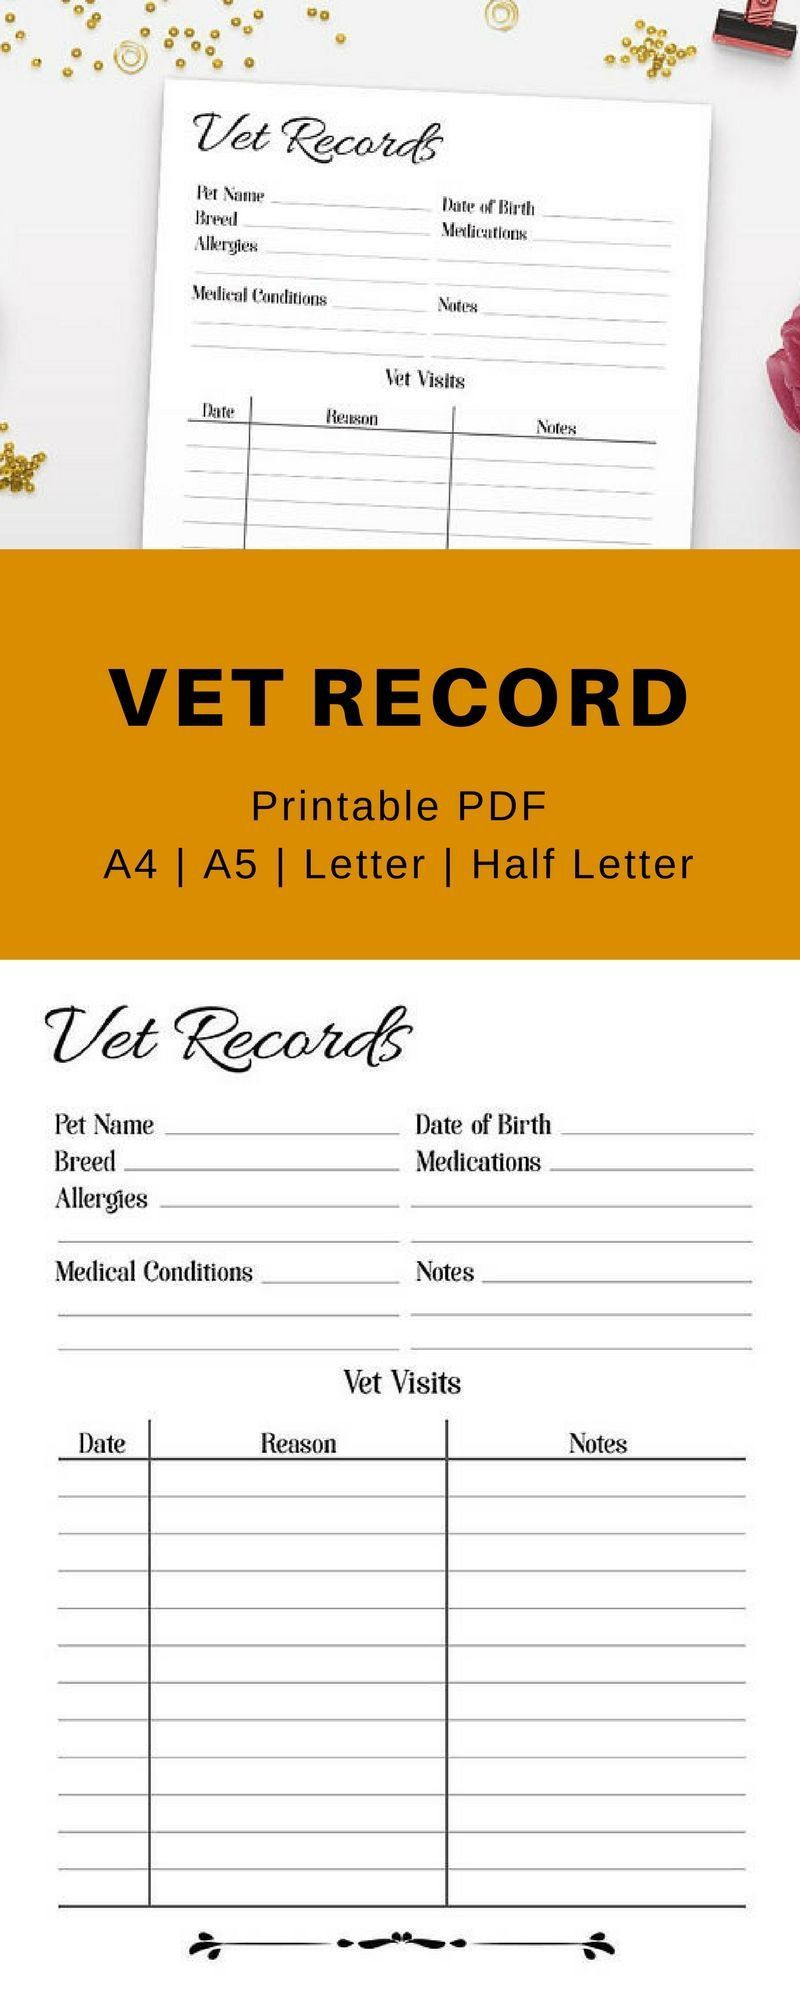 Pet Health Record Template In 2021 Pet Care Printables Pet Health Pet Health Record Pet medical records template download